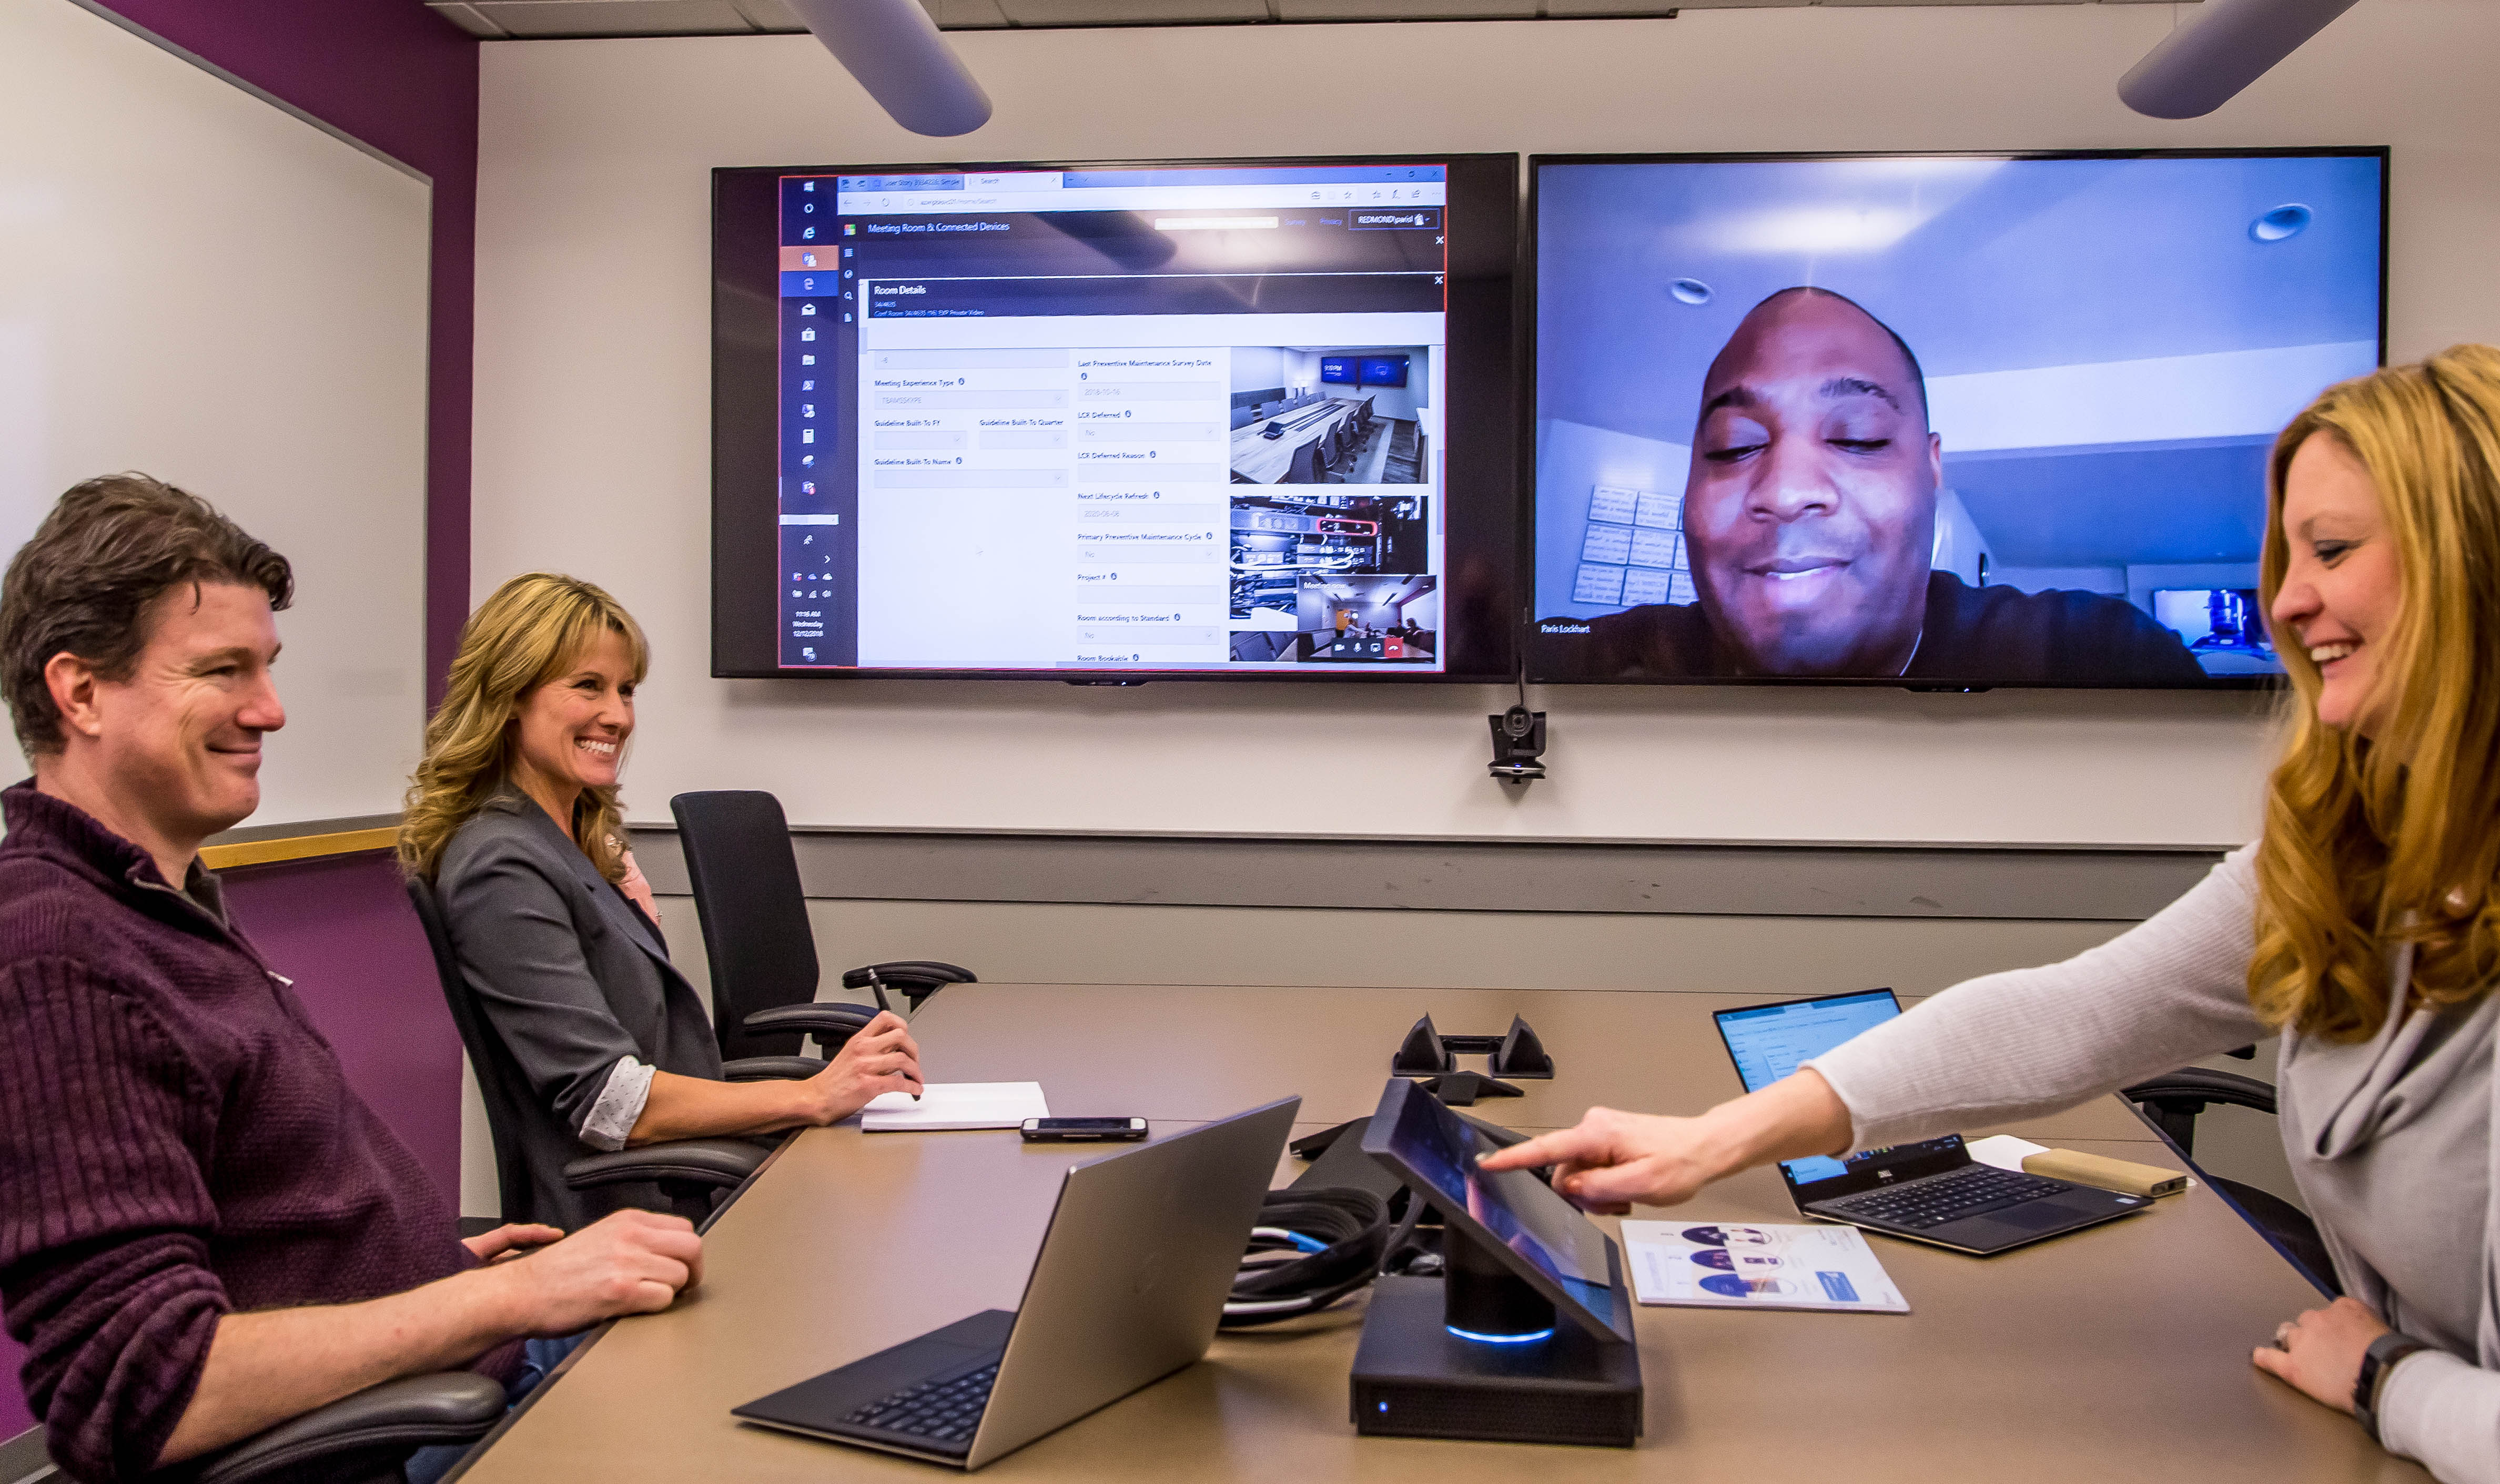 CSEO's Matt Hempey, Jaimie Faccone, and Stacie Kartes chat in a meeting room as Paris Lockhart joins them online via a large screen on the wall.